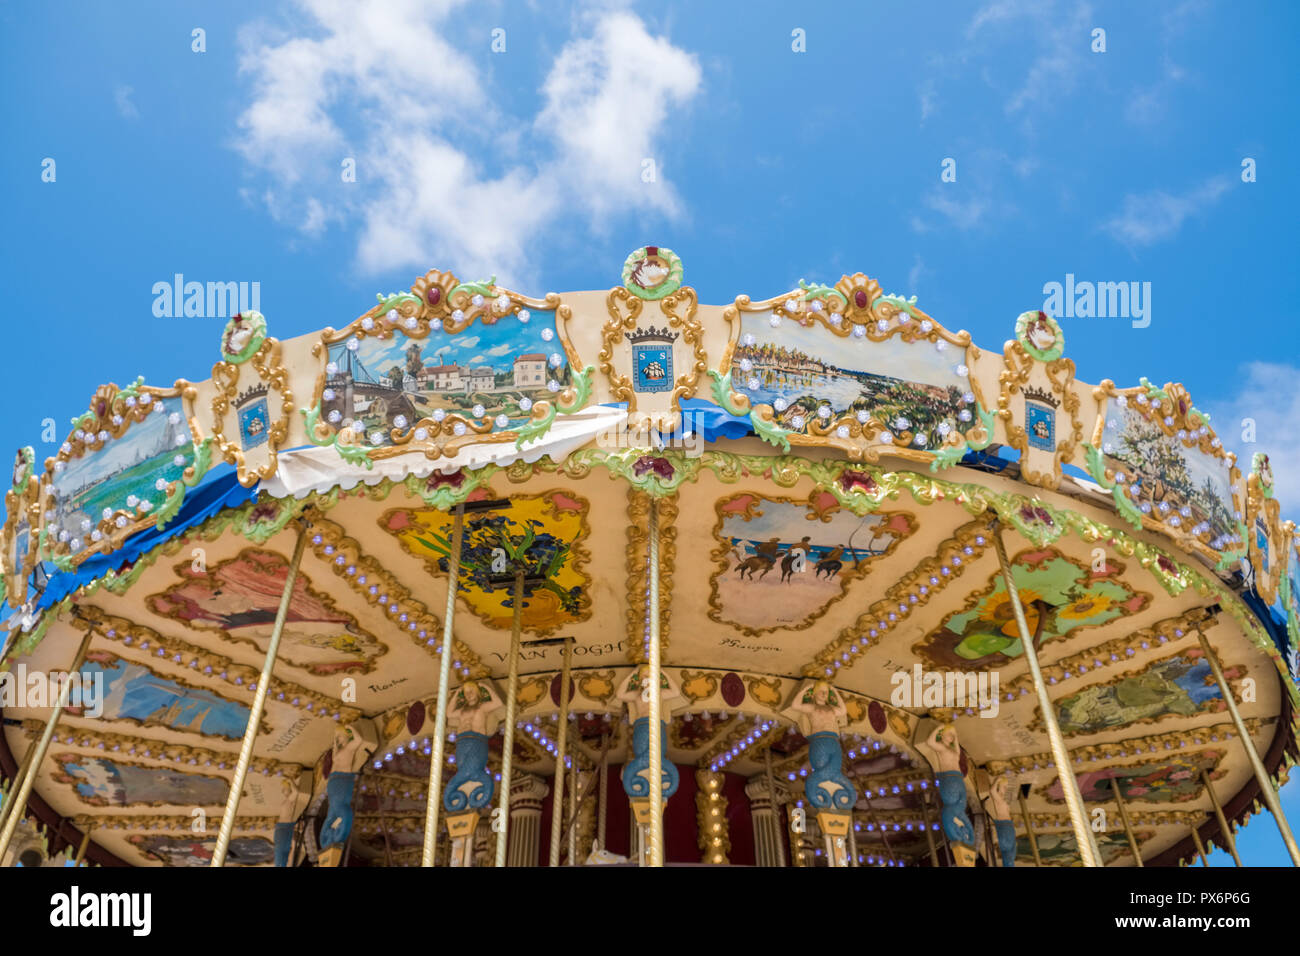 Carousel roundabout canopy against blue sky - Stock Image